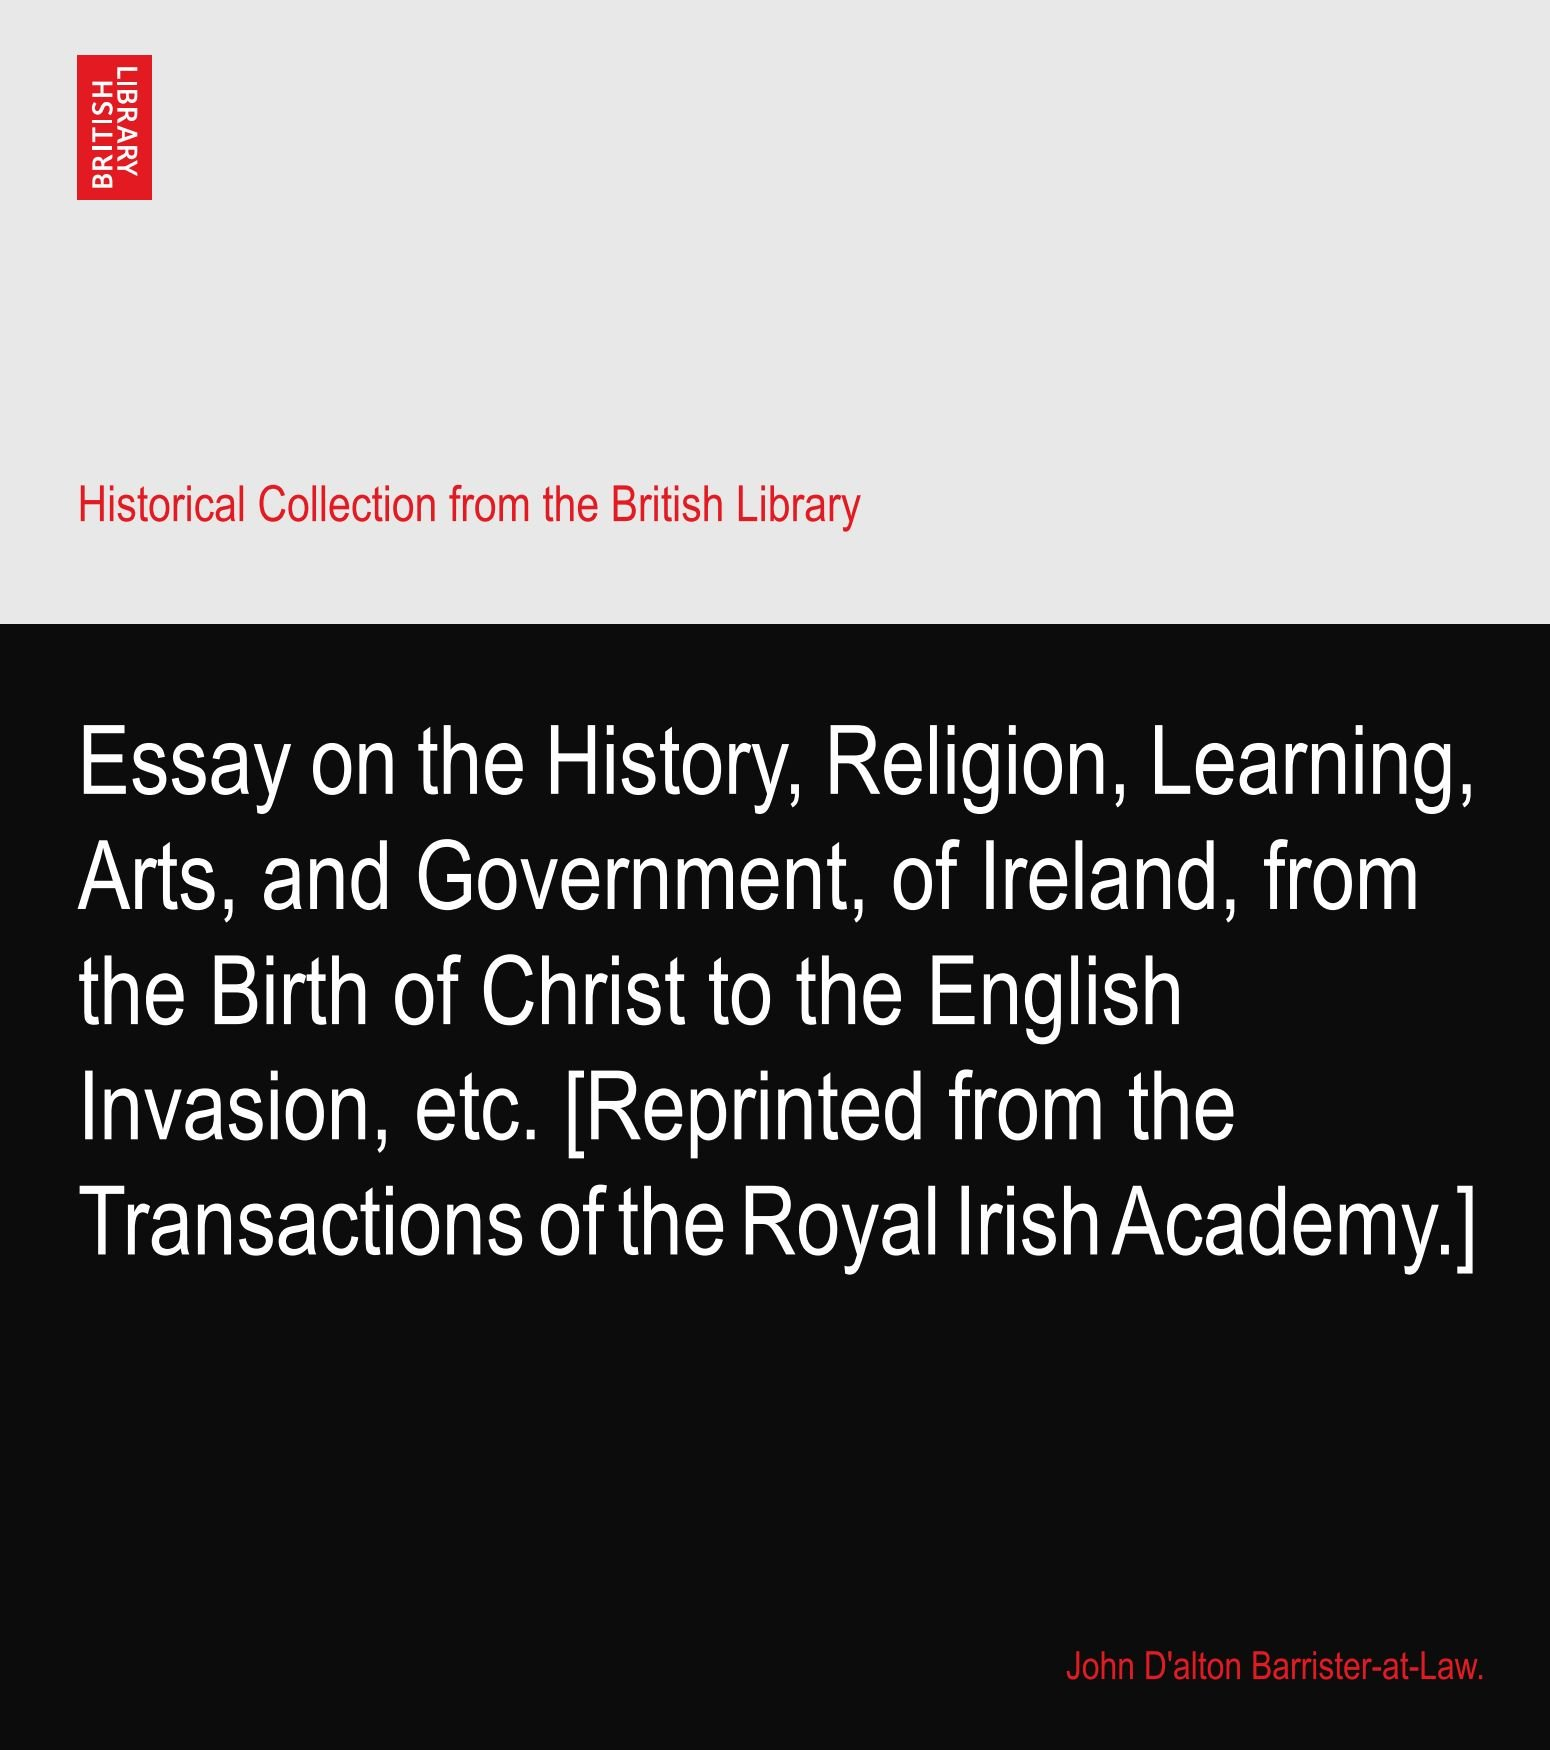 Download Essay on the History, Religion, Learning, Arts, and Government, of Ireland, from the Birth of Christ to the English Invasion, etc. [Reprinted from the Transactions of the Royal Irish Academy.] pdf epub